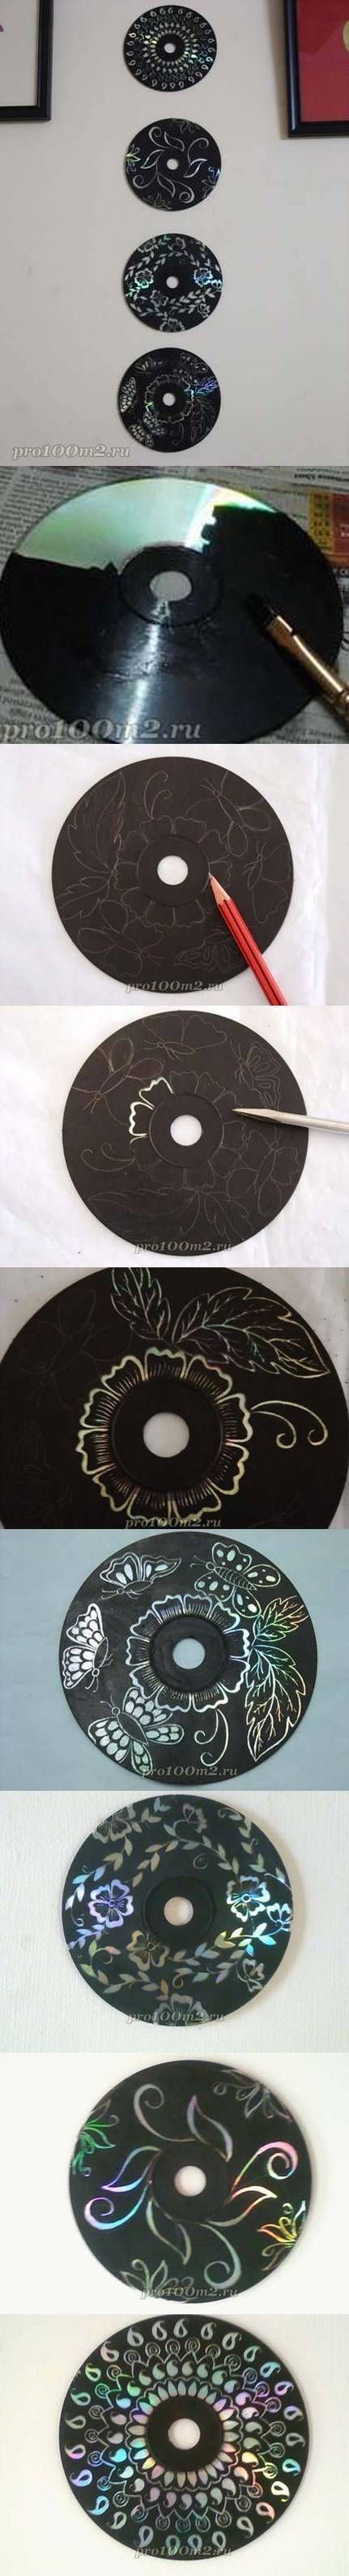 Recycled CDs - Possible Make & Take SRP prize? Have teen volunteers paint (Monticello volunteer time project?). Give painted CD with skewer in ziplock bag as prize.: